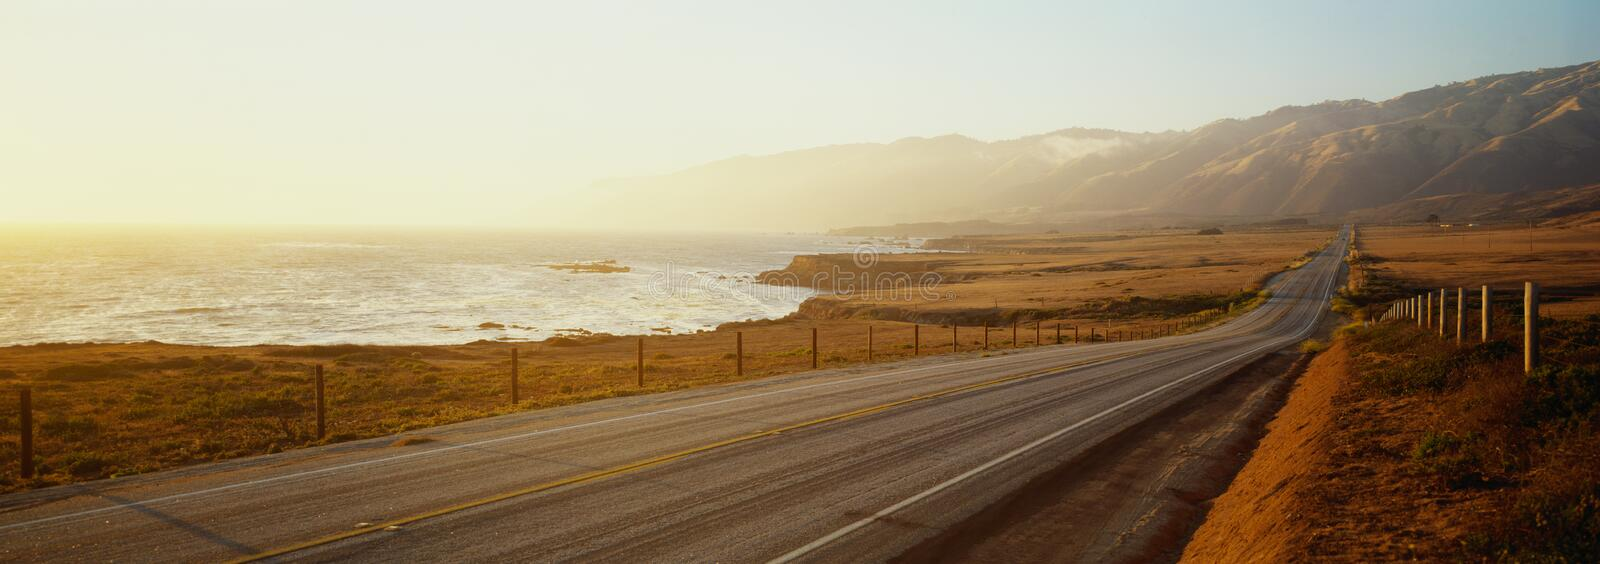 Pacific Coast Highway. This is Route 1also known as the Pacific Coast Highway. The road is situated next to the ocean with the mountains in the distance. The stock photography